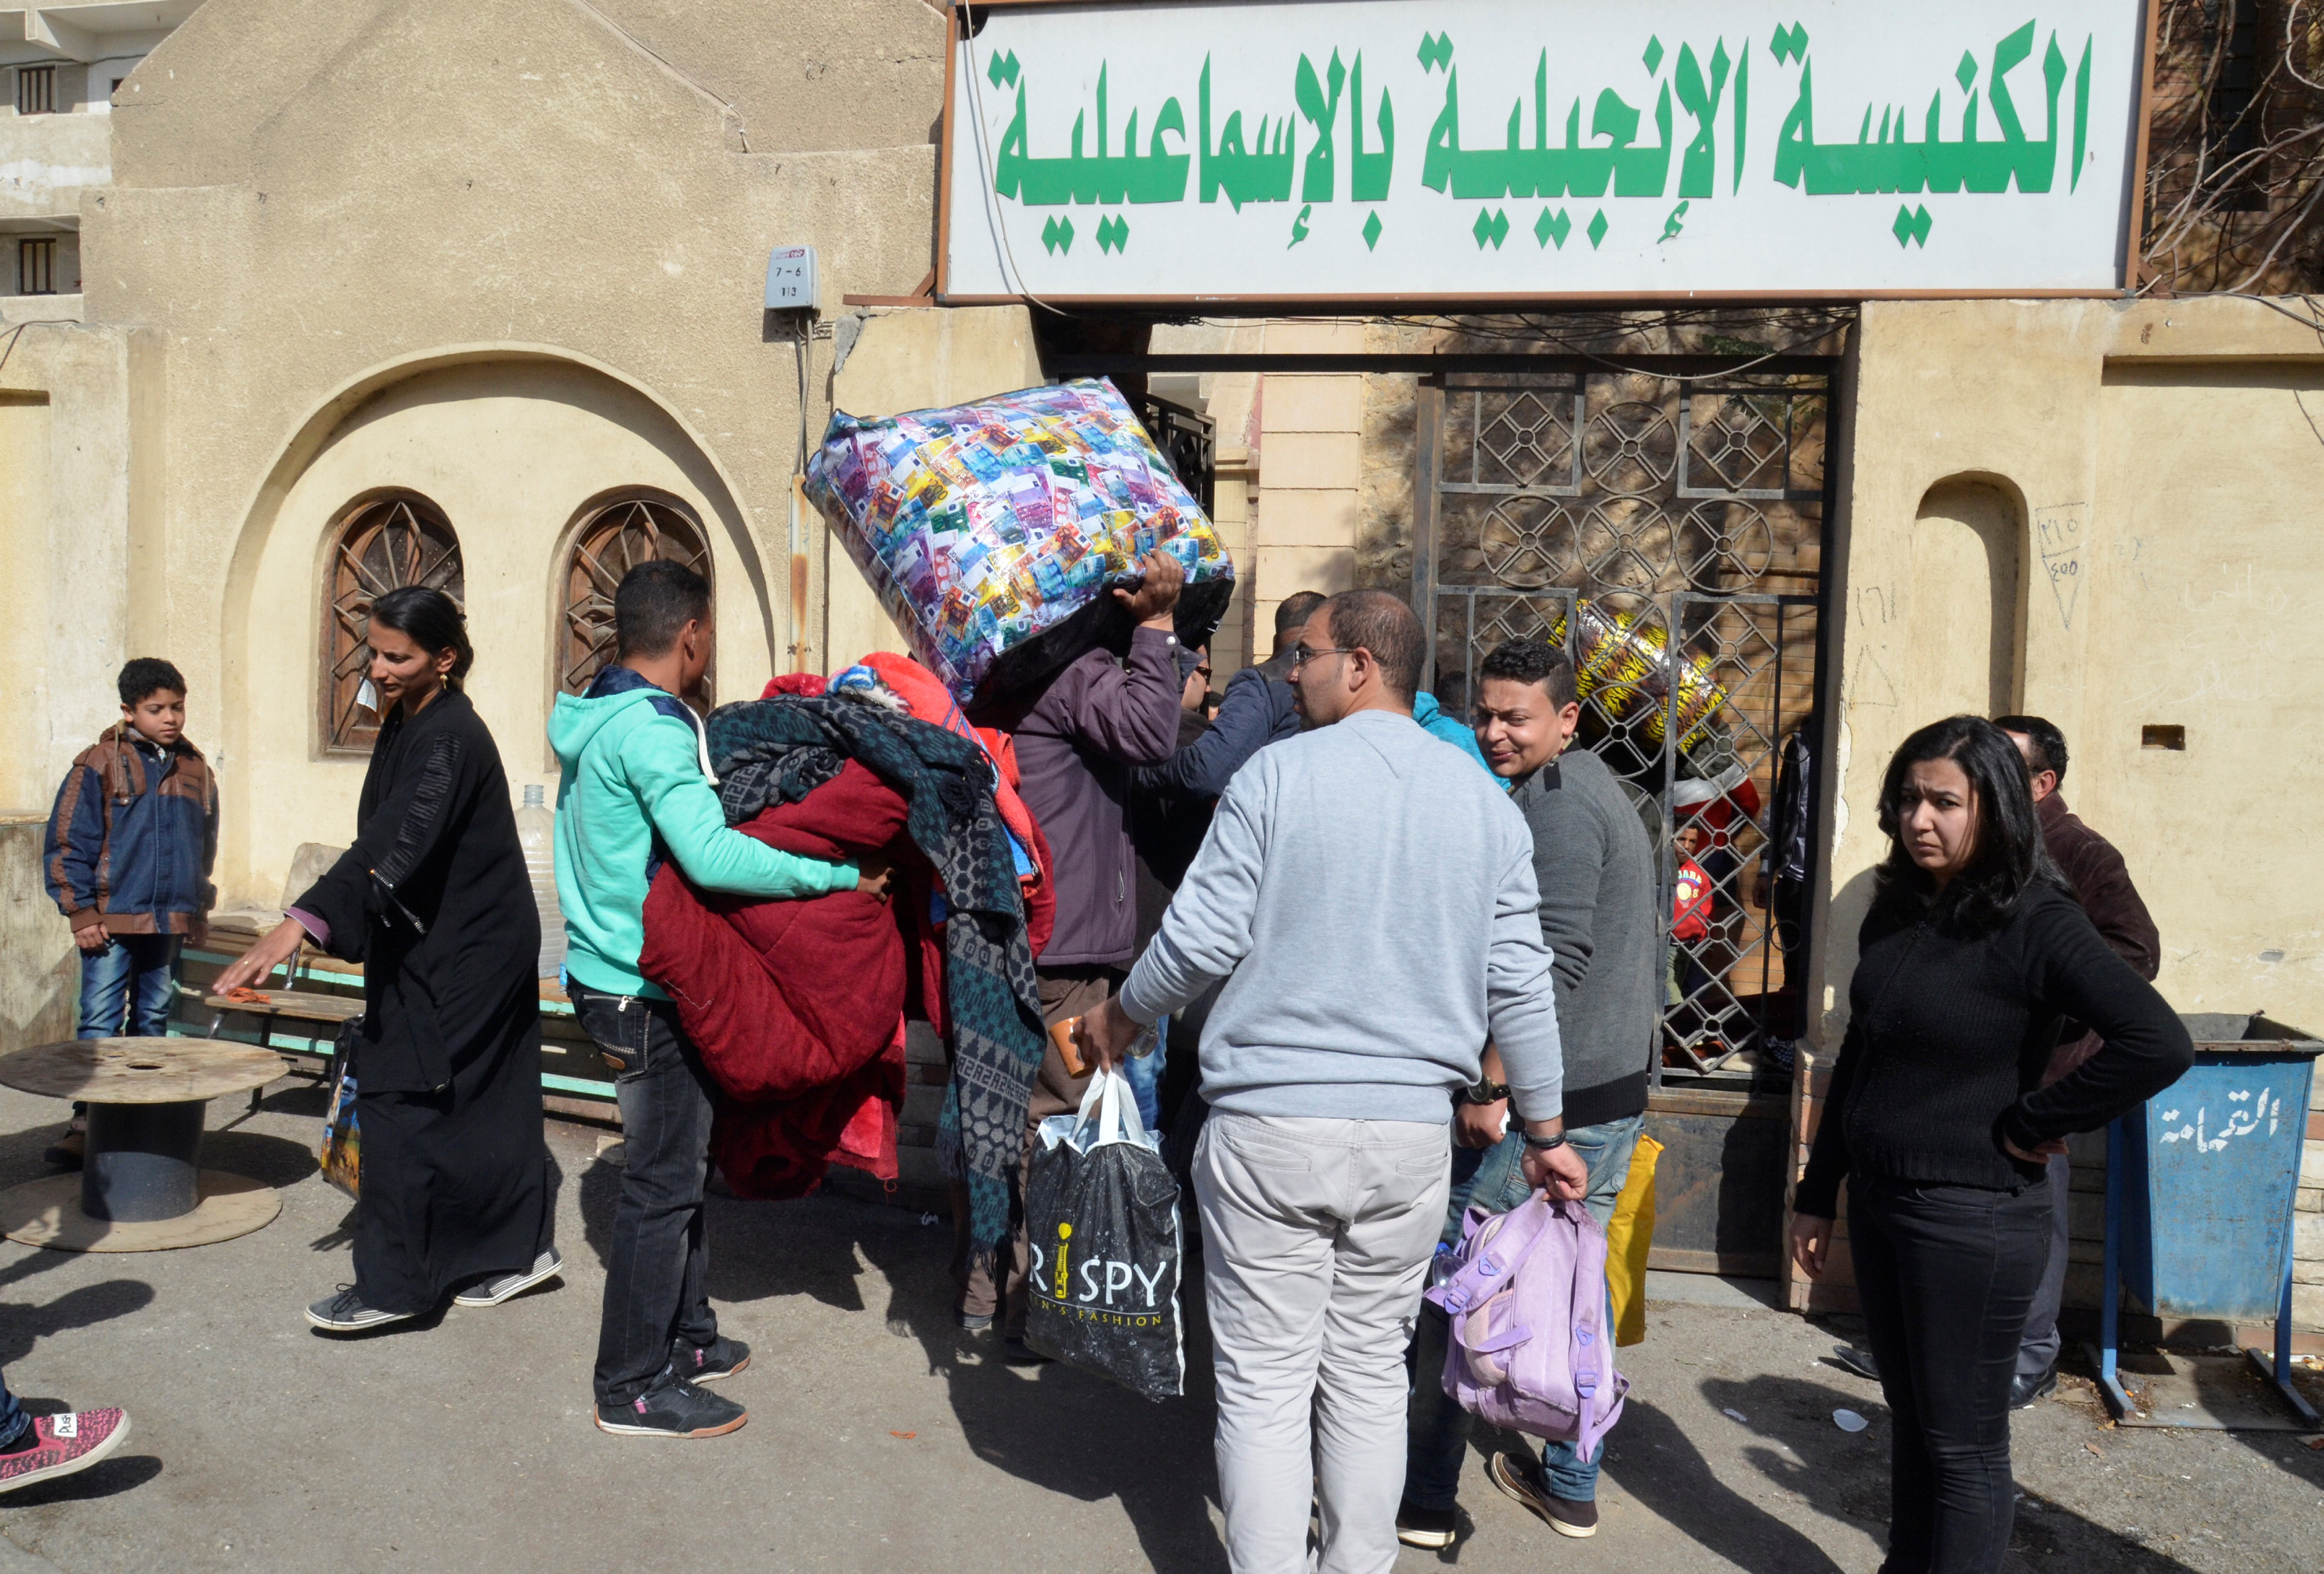 Christian families who left from Al-Arish in the North Sinai Governorate after the escalation of a campaign targeting Christians by Islamic State militants last week, arrive at the Evangelical Church in Ismailia, Egypt February 24, 2017. Credit: Ahmed Aboulenein/Reuters